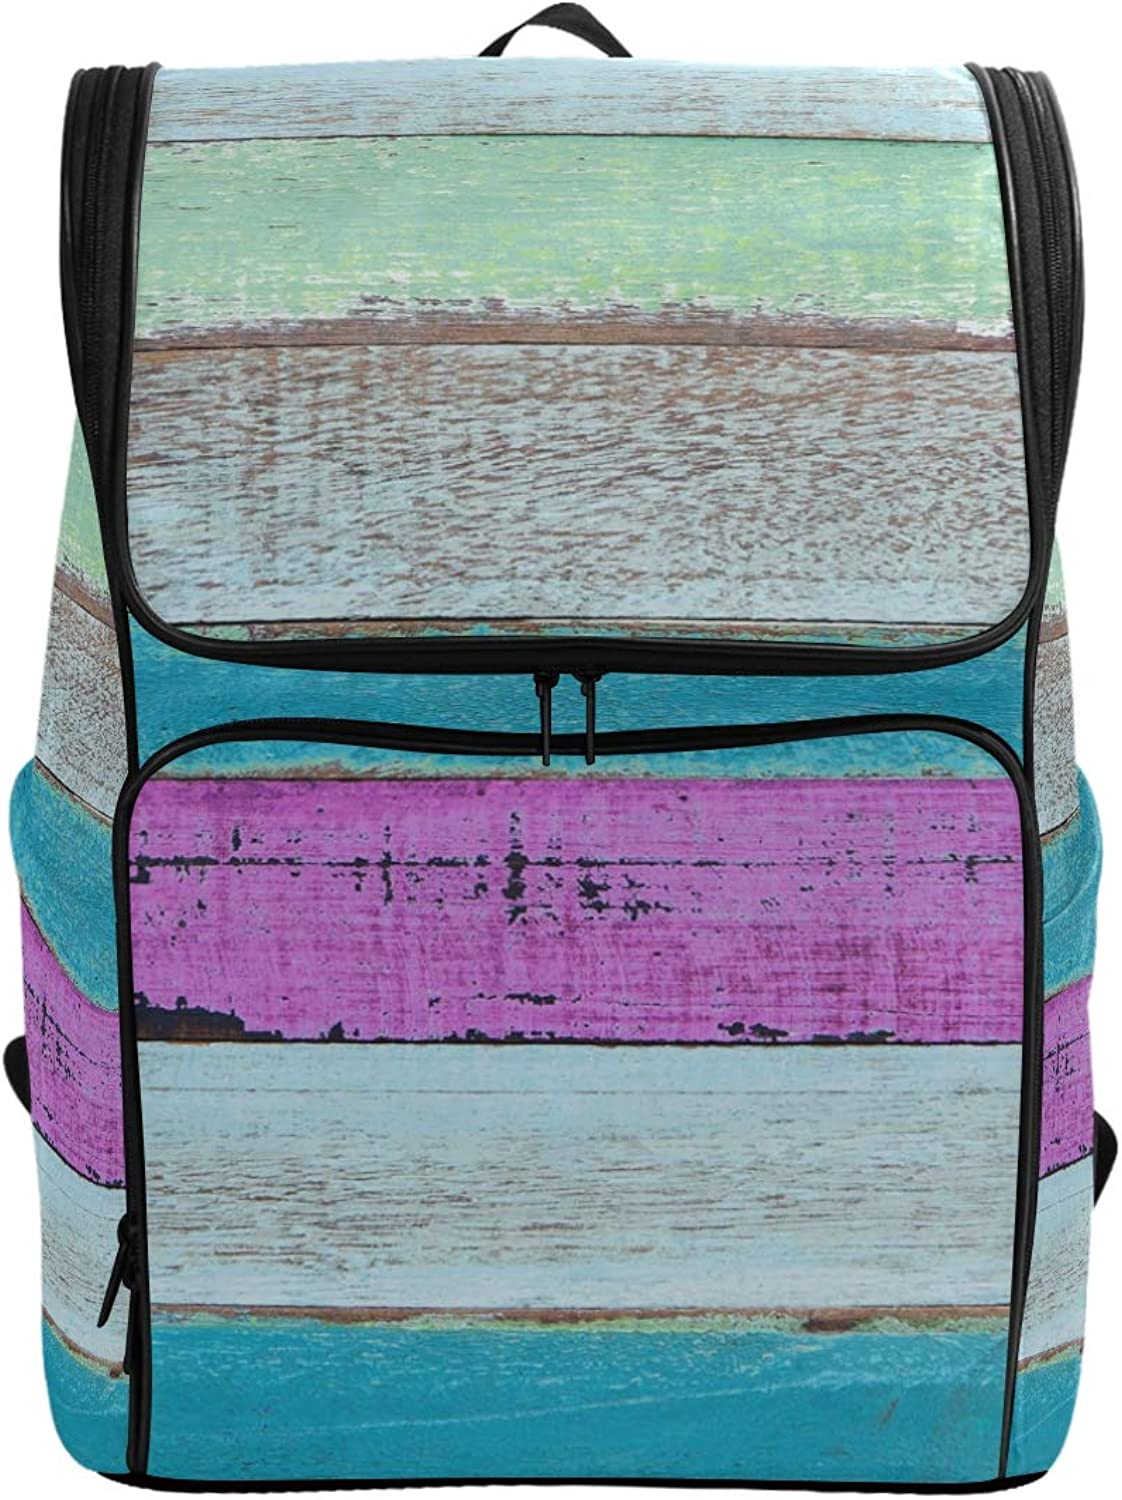 MONTOJ Faded color Wood Board Pattern Outdoor Hiking Backpack Hiking & Travelling Backpack with Laptop Compartment & Camping Backpack